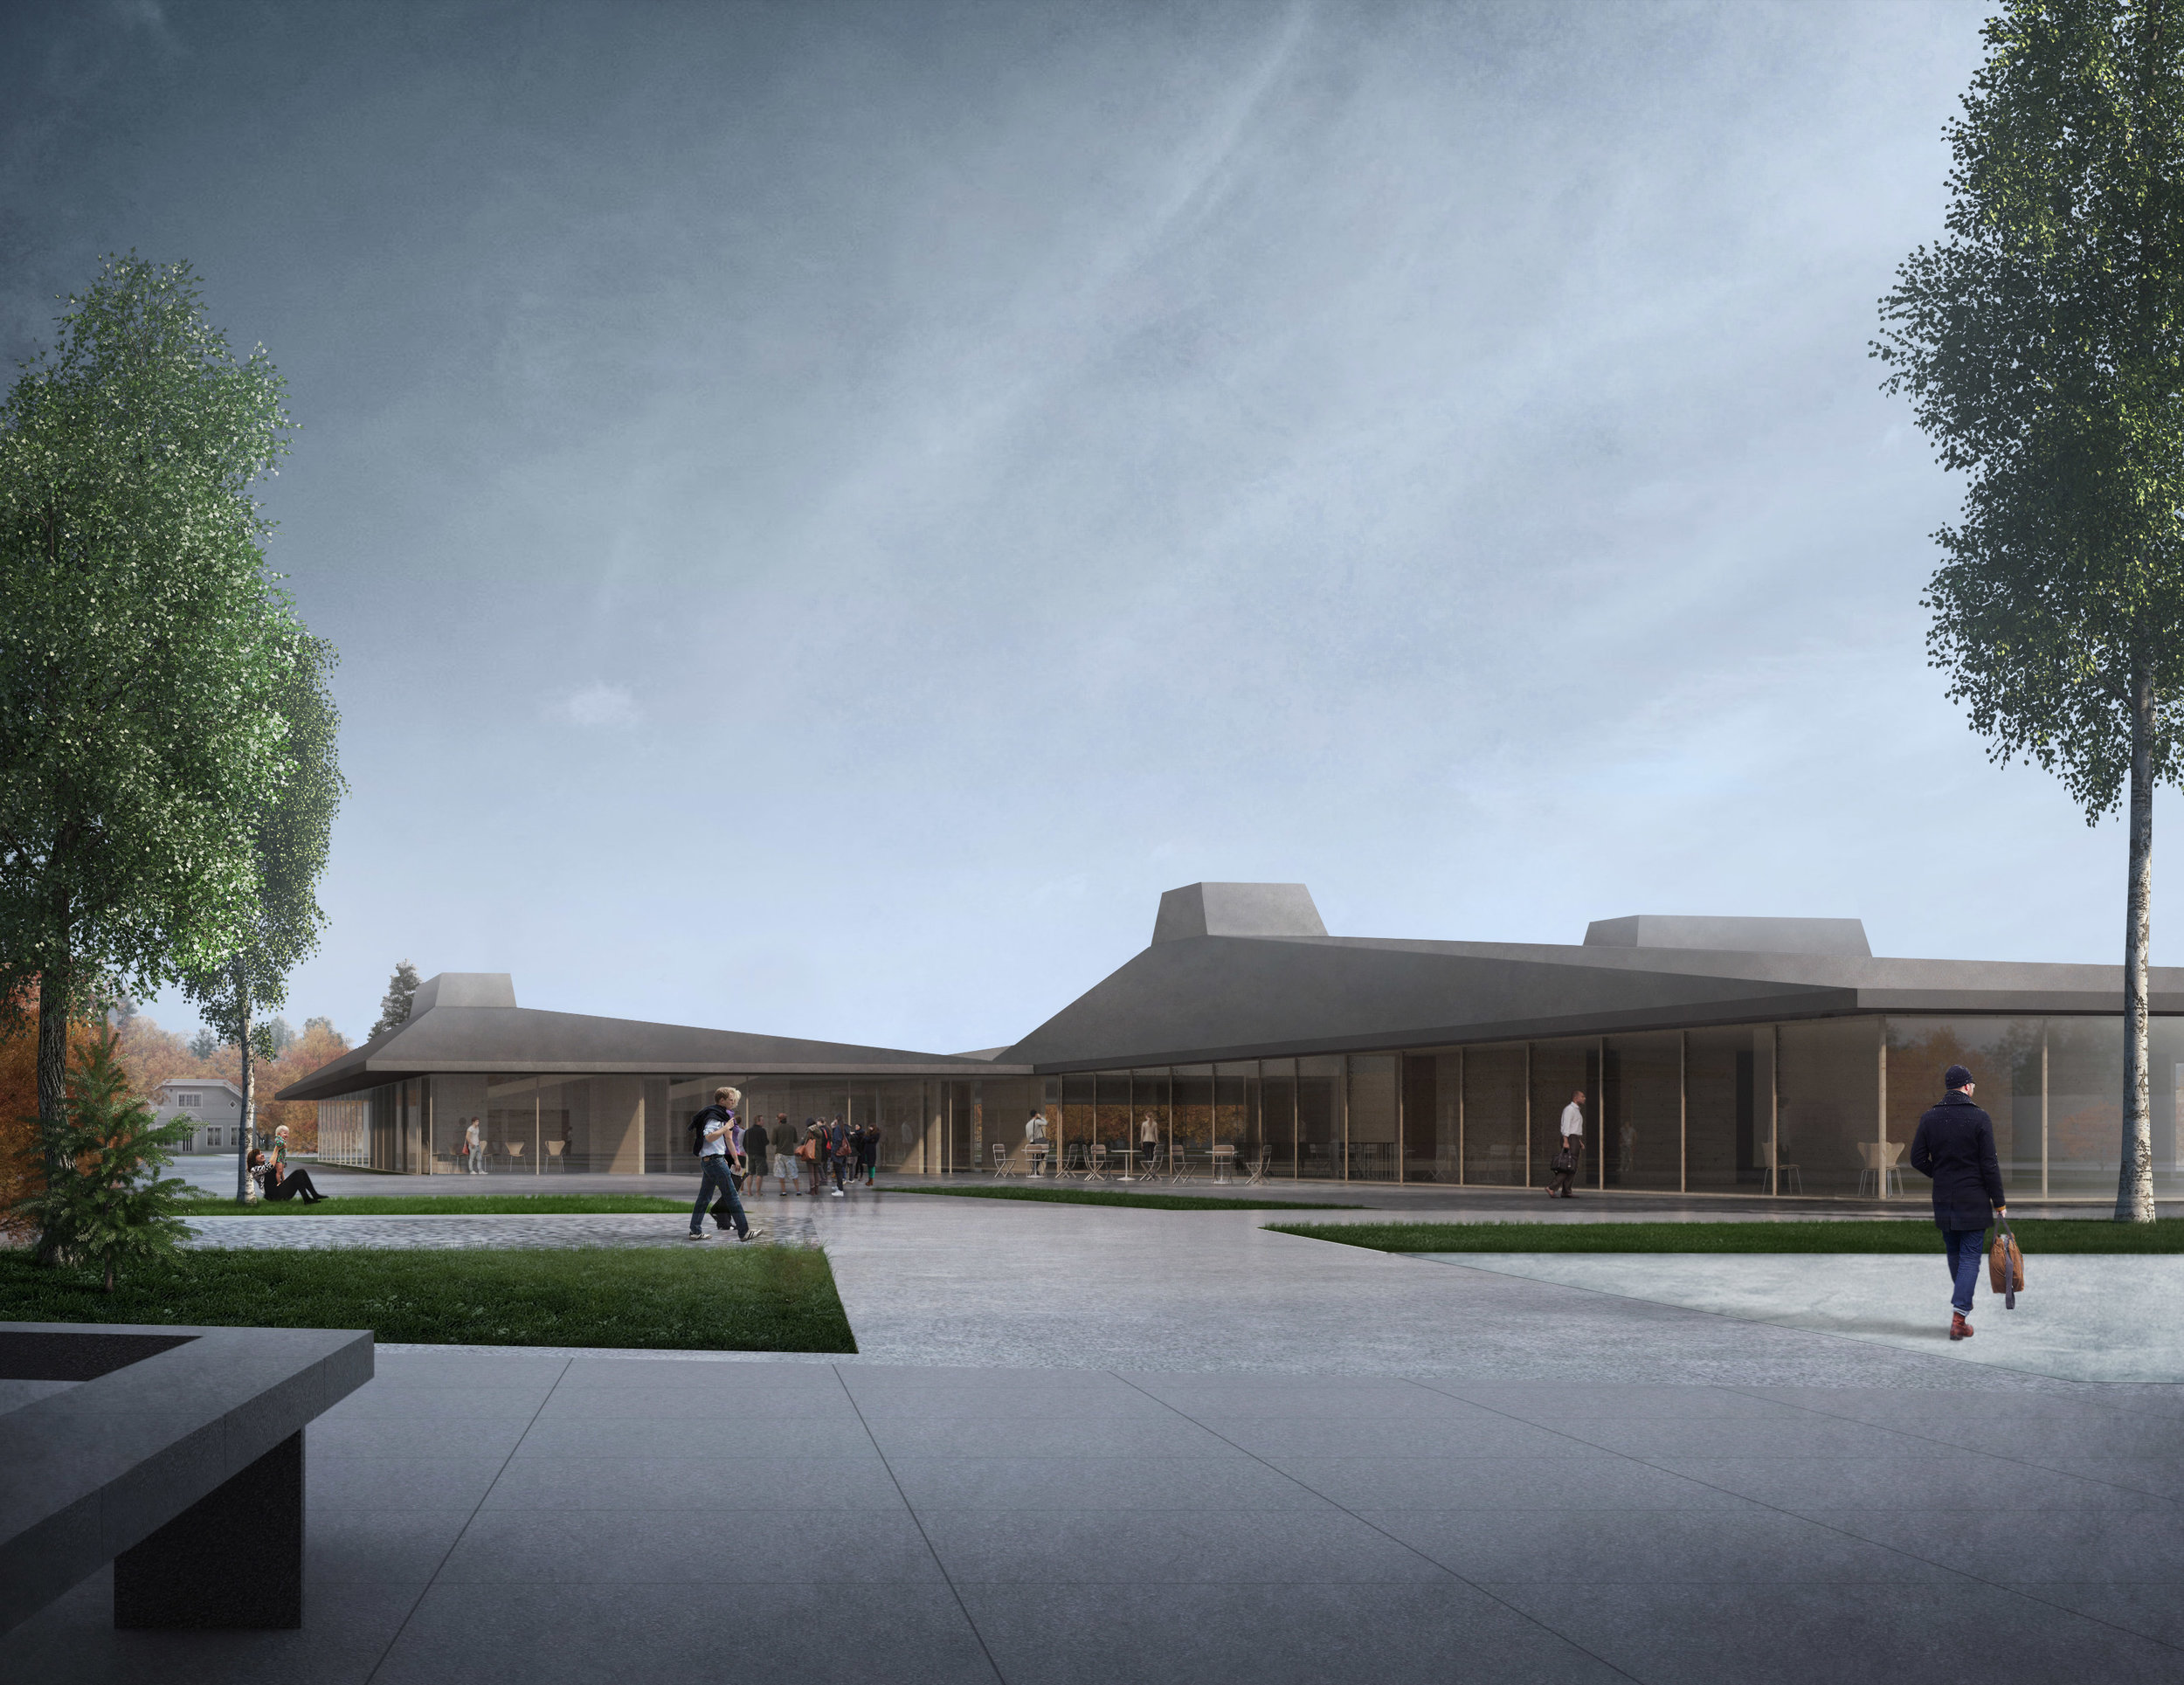 RVA has been awarded with an honorable mention in the competition for the  School and Activity House in Våler, Norway